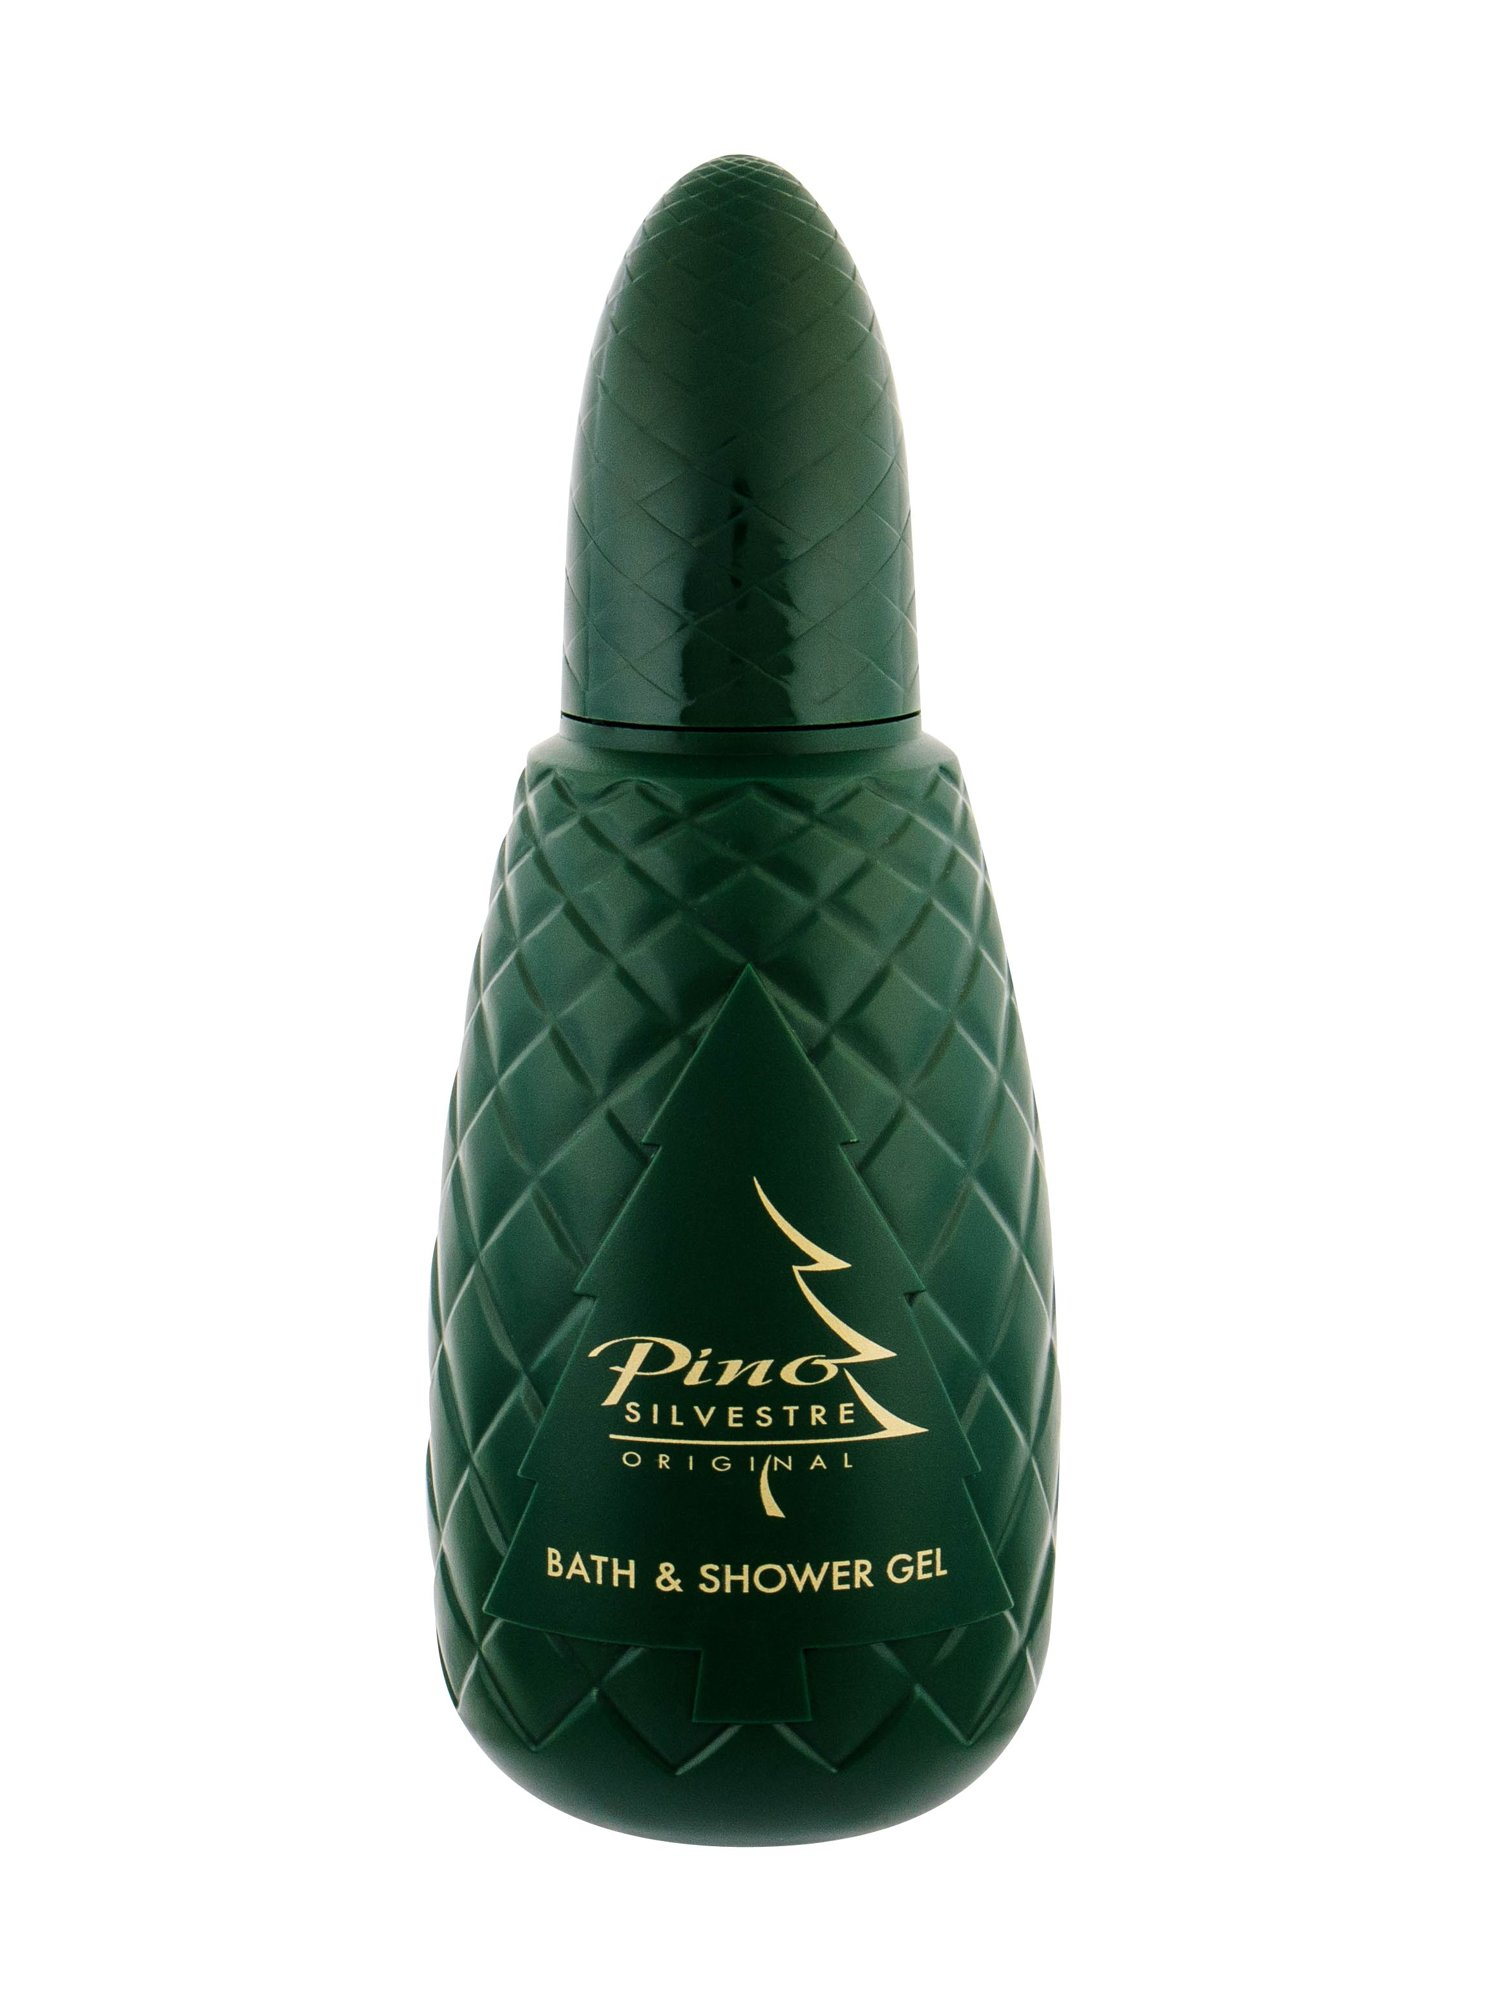 Pino Silvestre Pino Silvestre Original Shower Gel 500ml